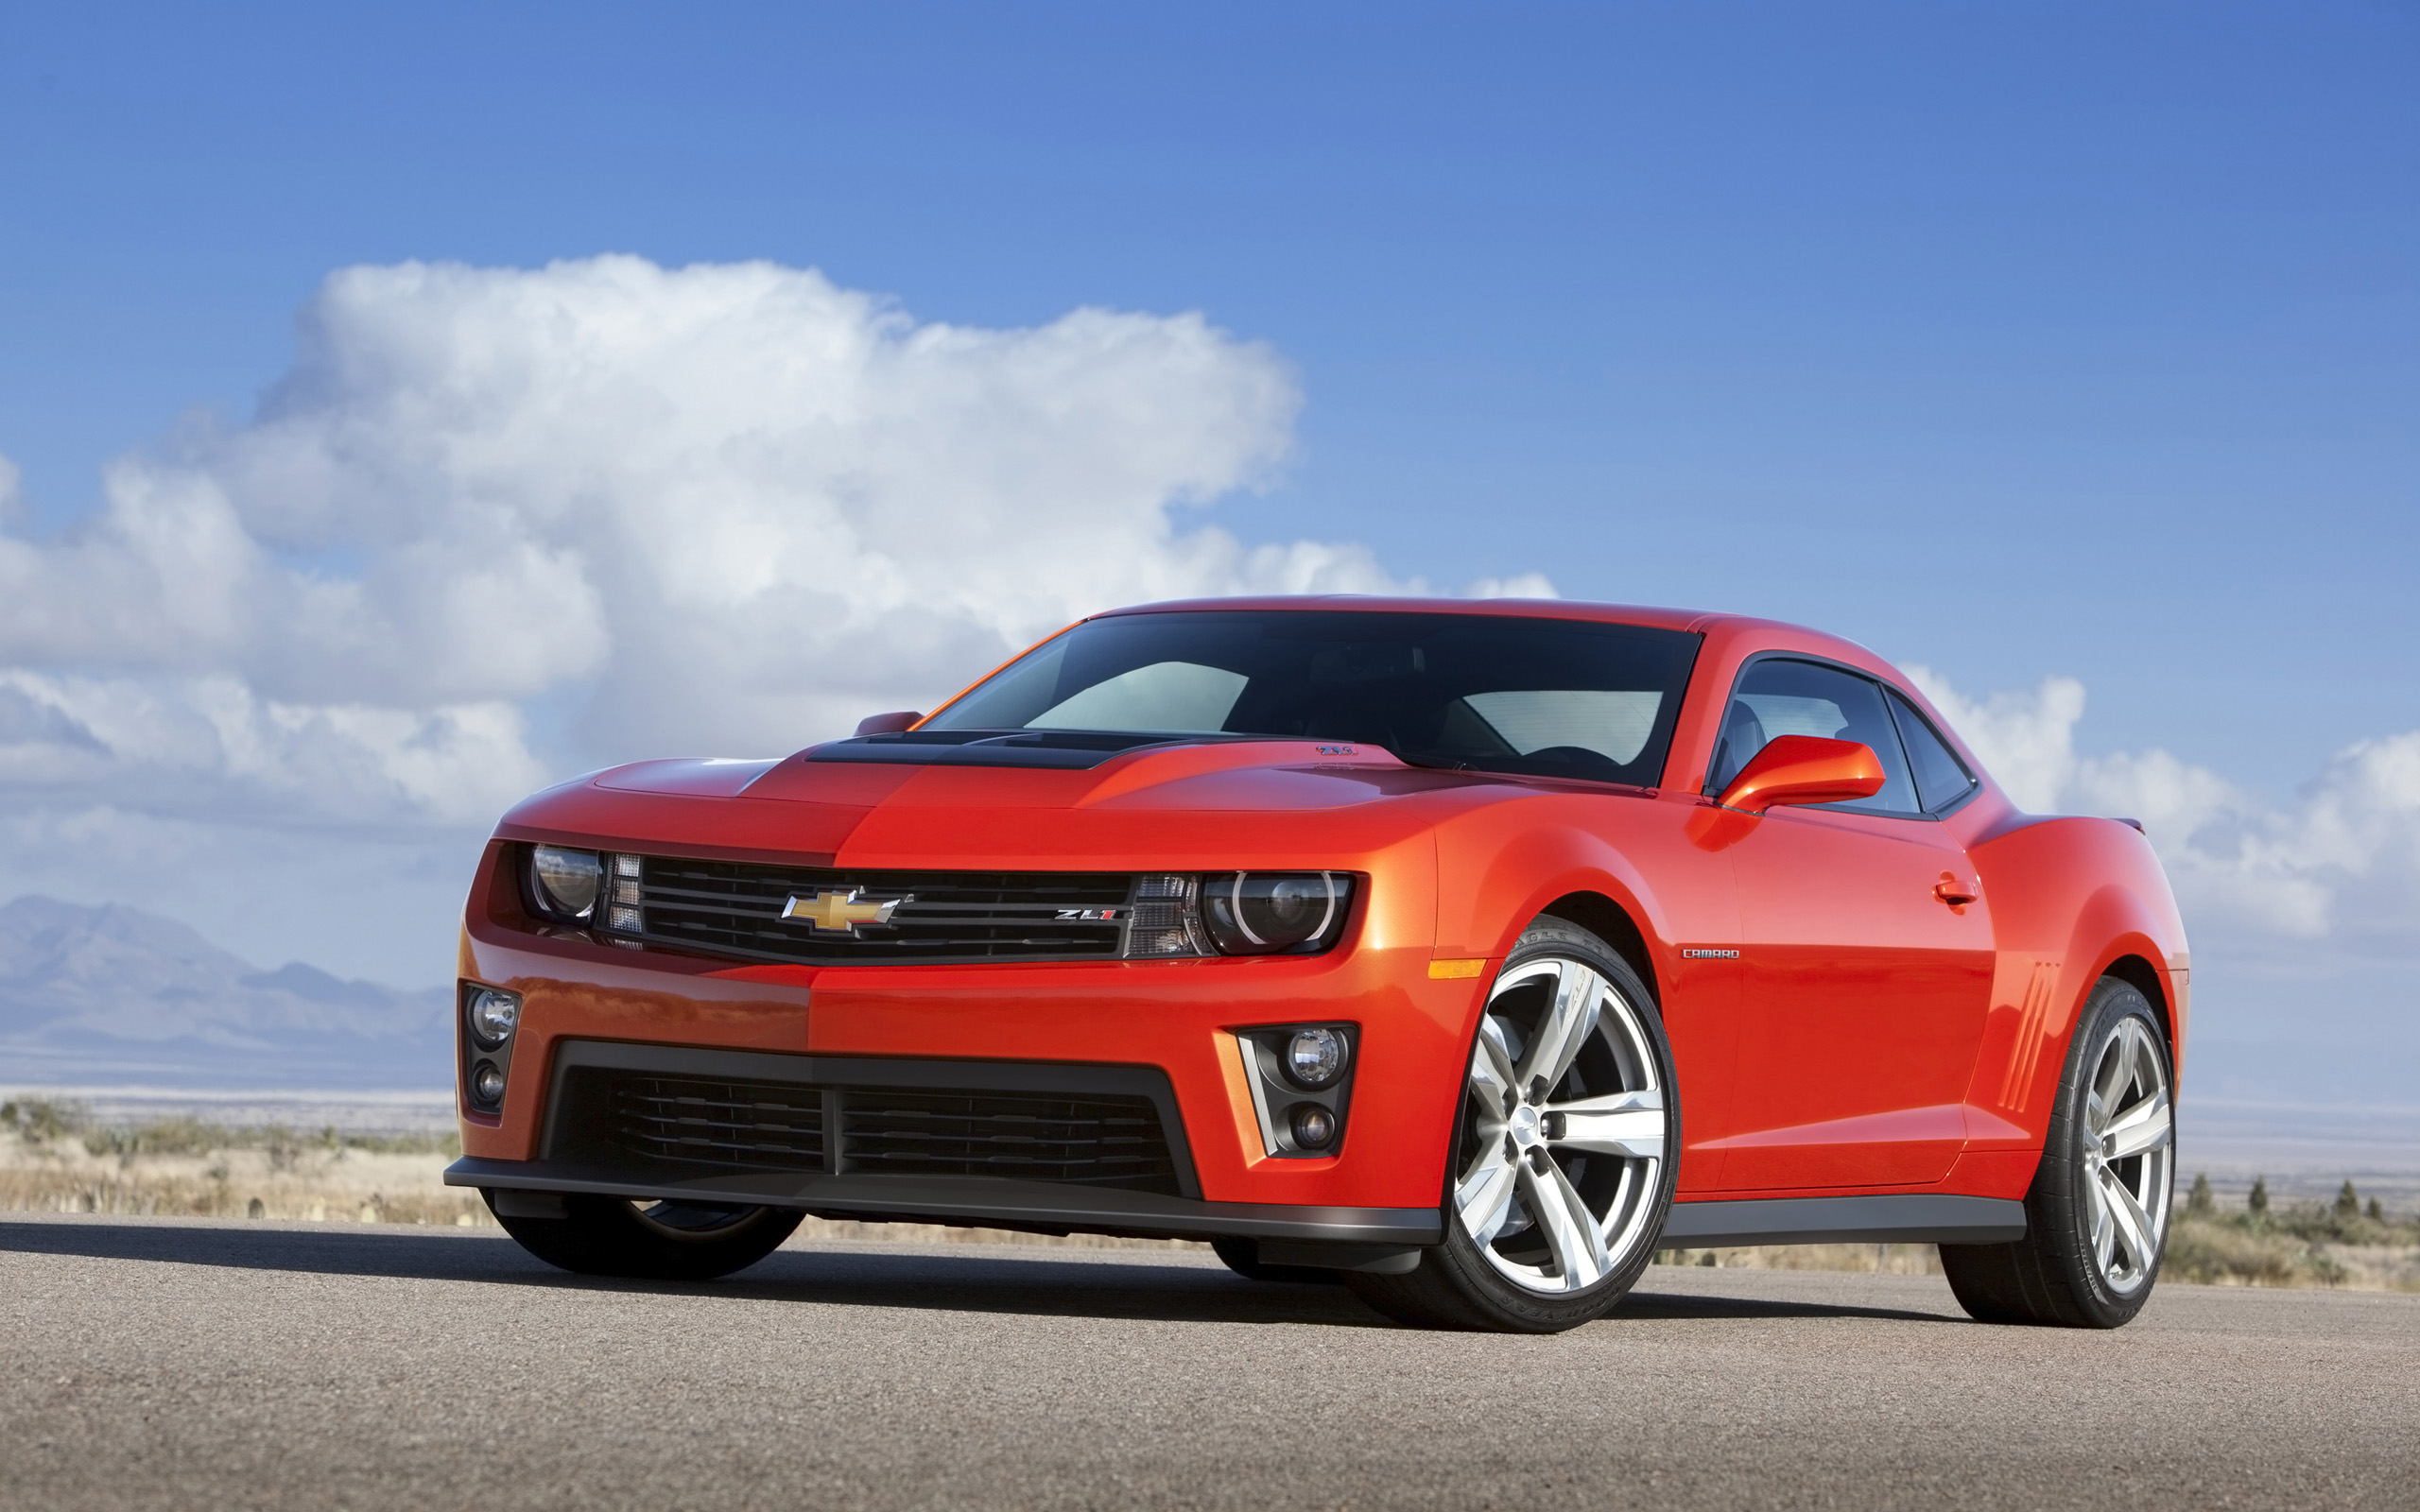 2015 camaro zl1 muscle car show hd wallpaper champacotile com 2560x1600